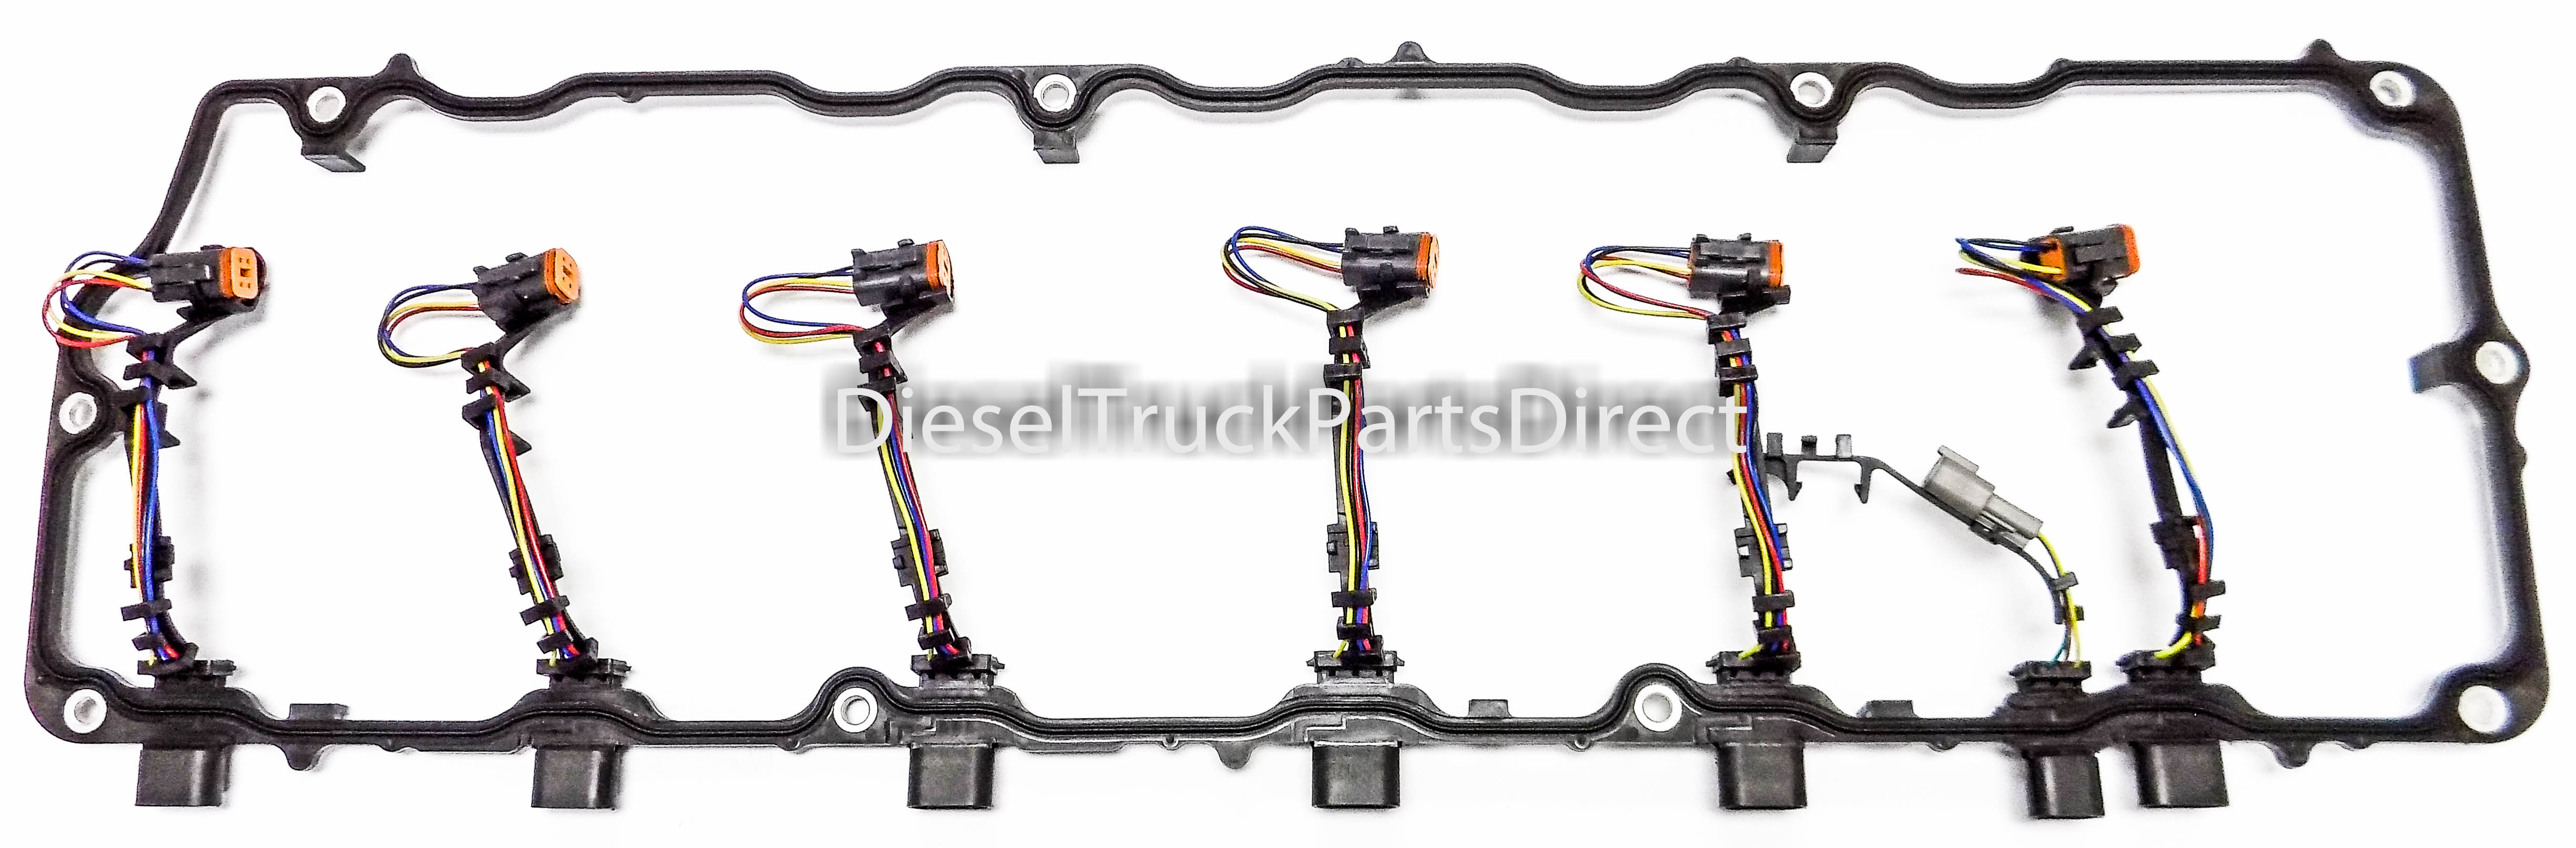 Volvo D12 Injector Harness Diagram Ask Answer Wiring Ved12 Starter Get Free Image About Service Manual 2005